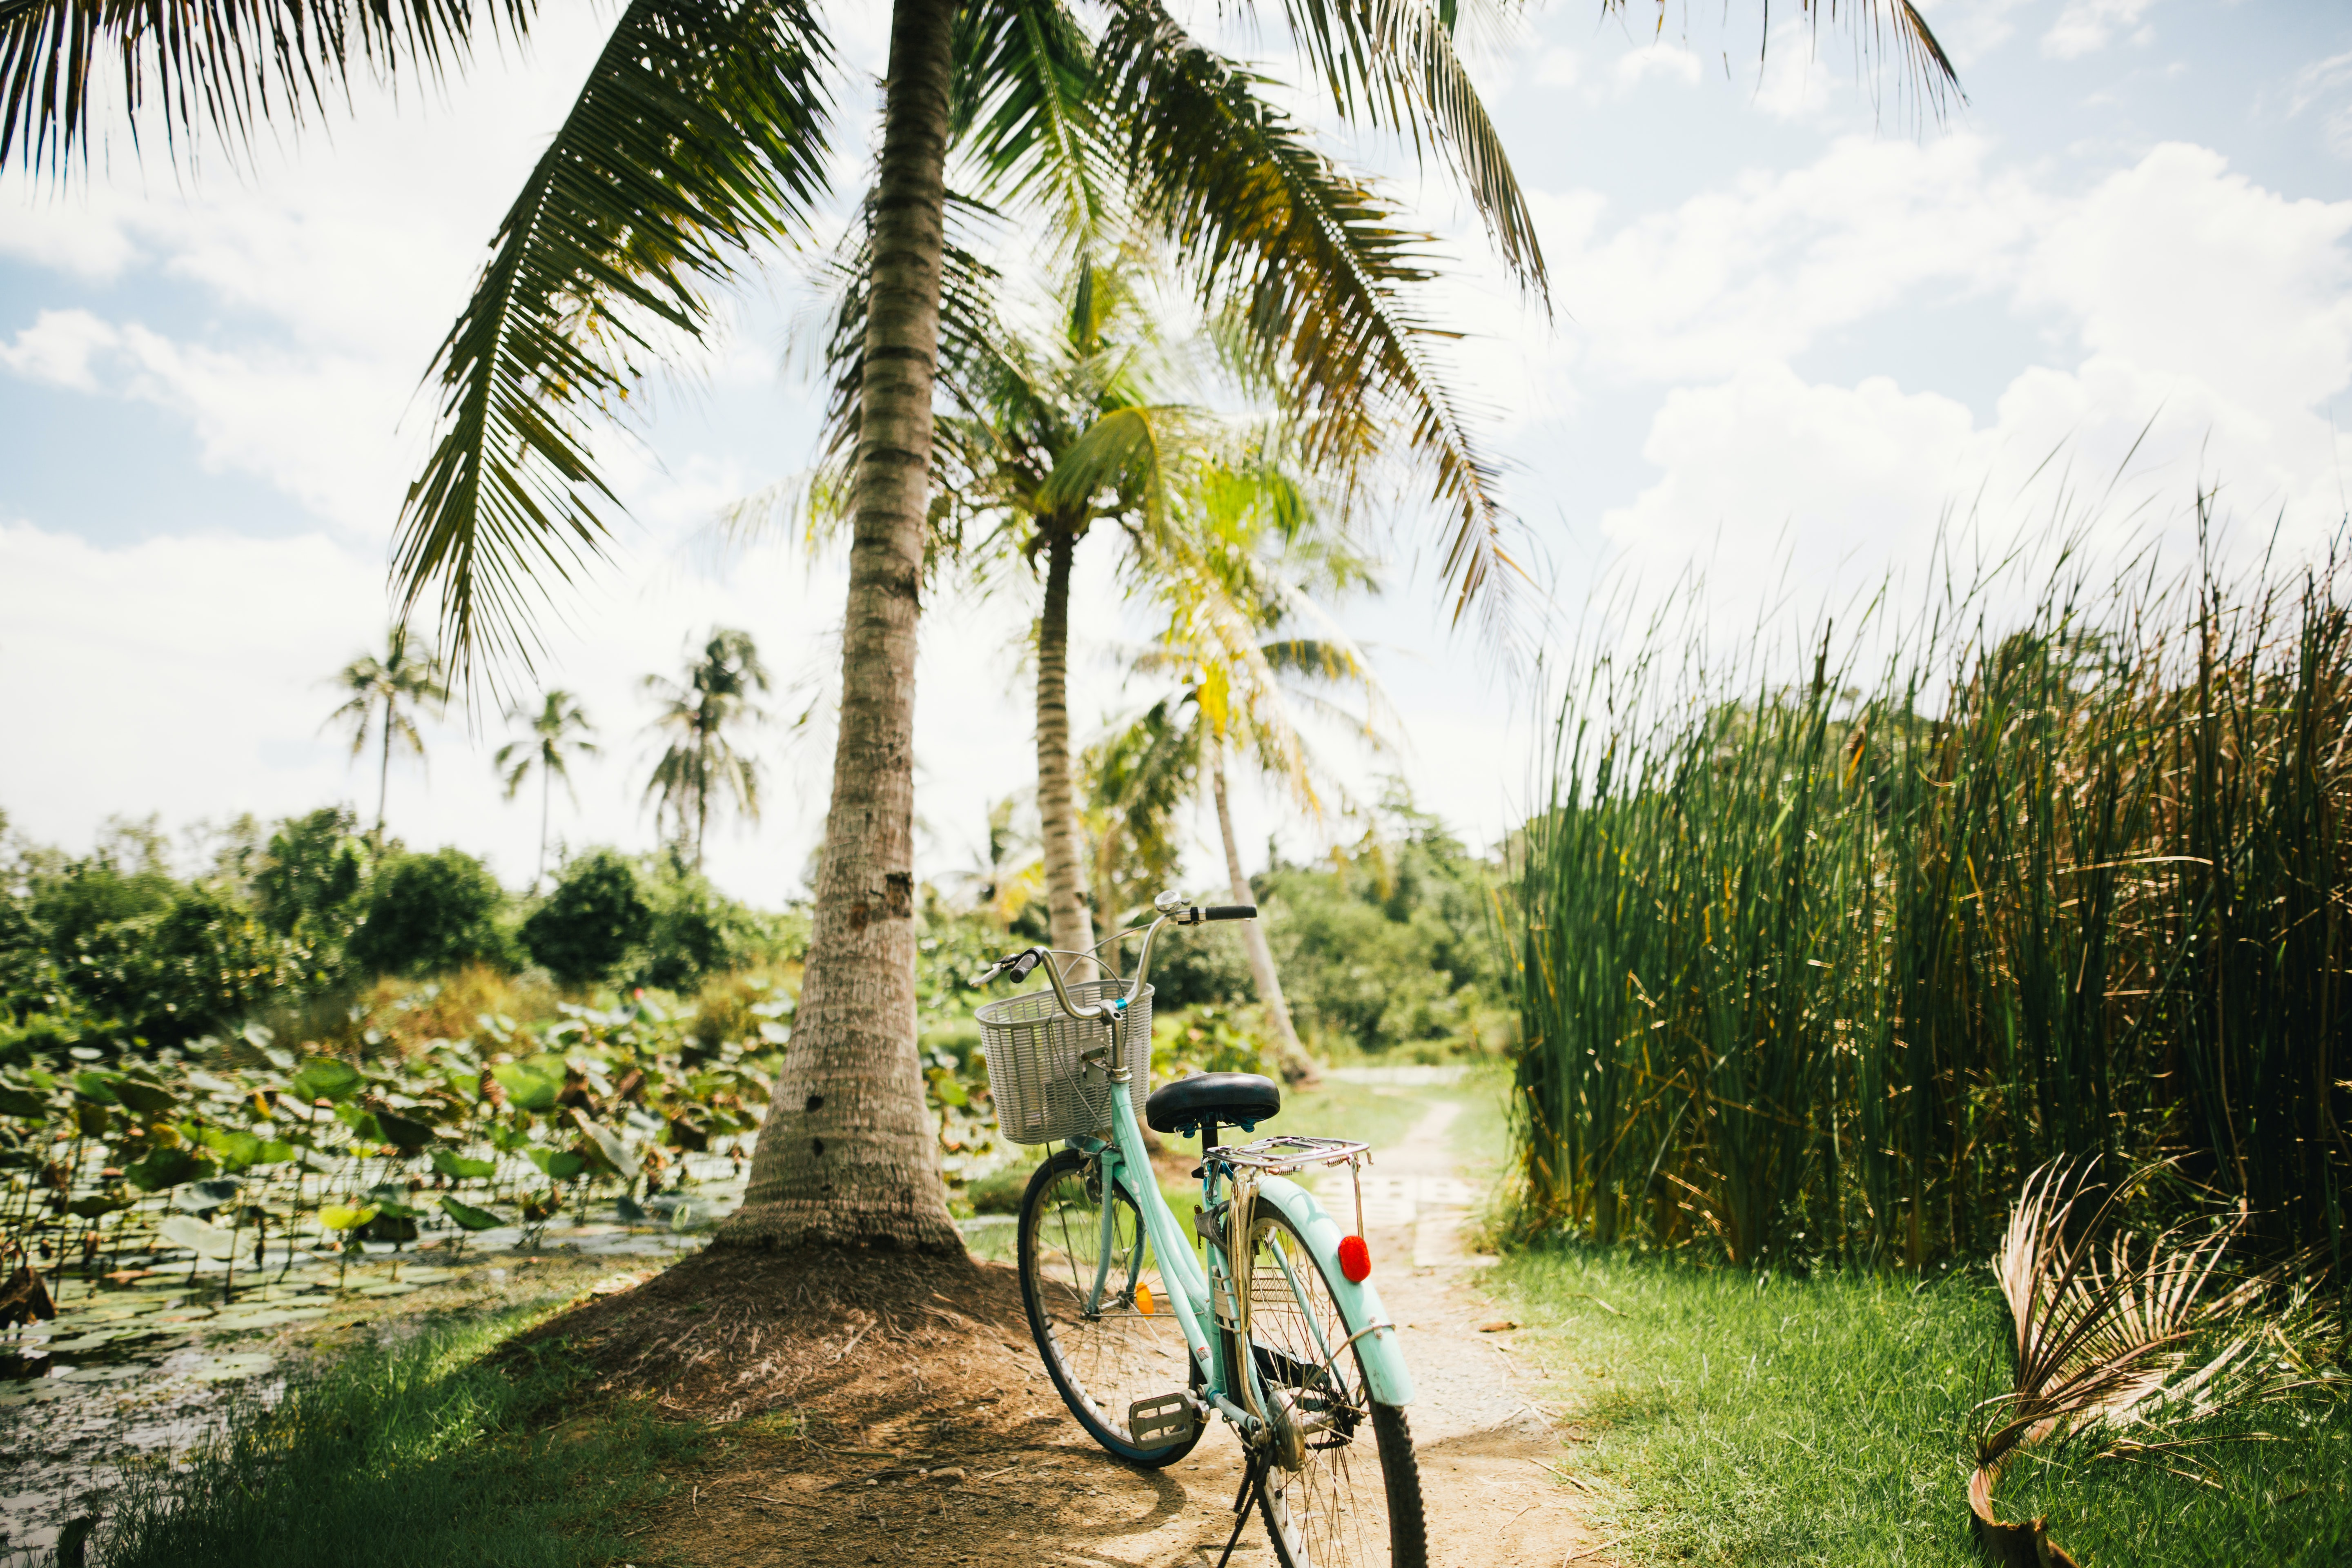 blue beach cruiser bike near on the coconut tree